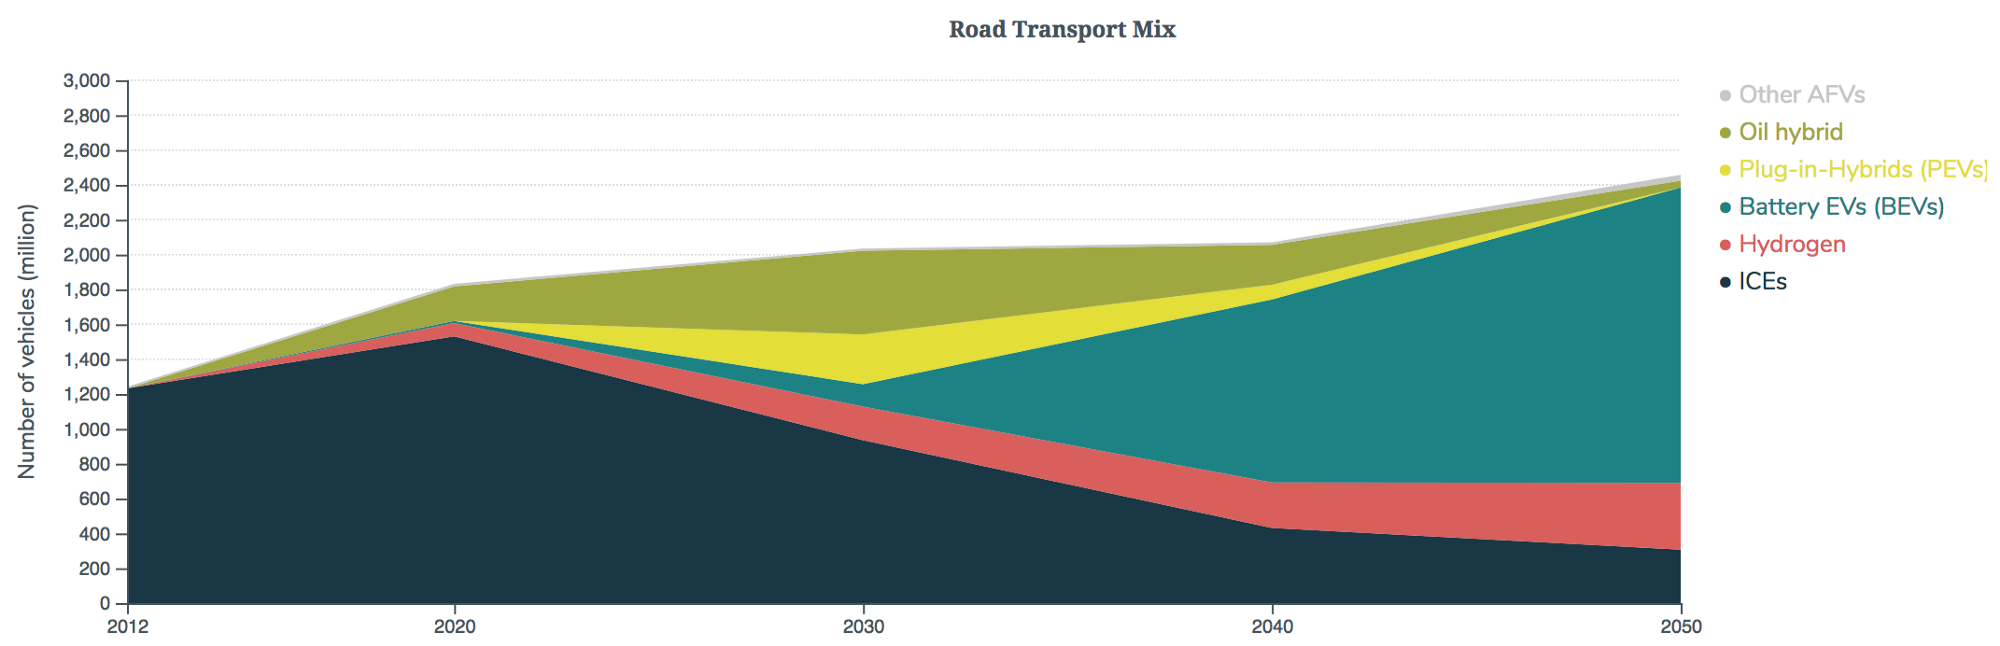 road transport mix